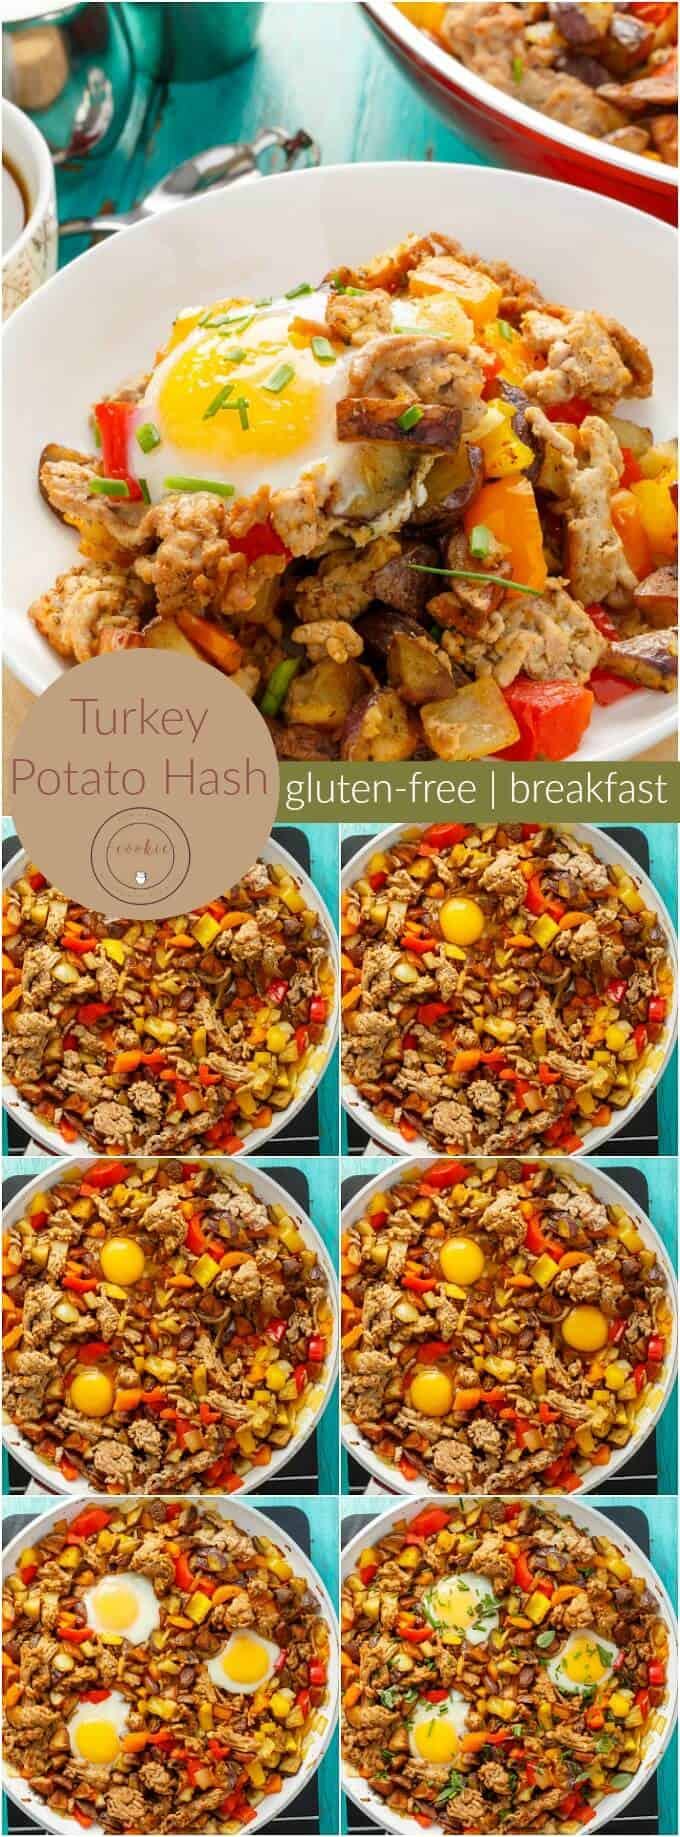 Turkey Potato Hash